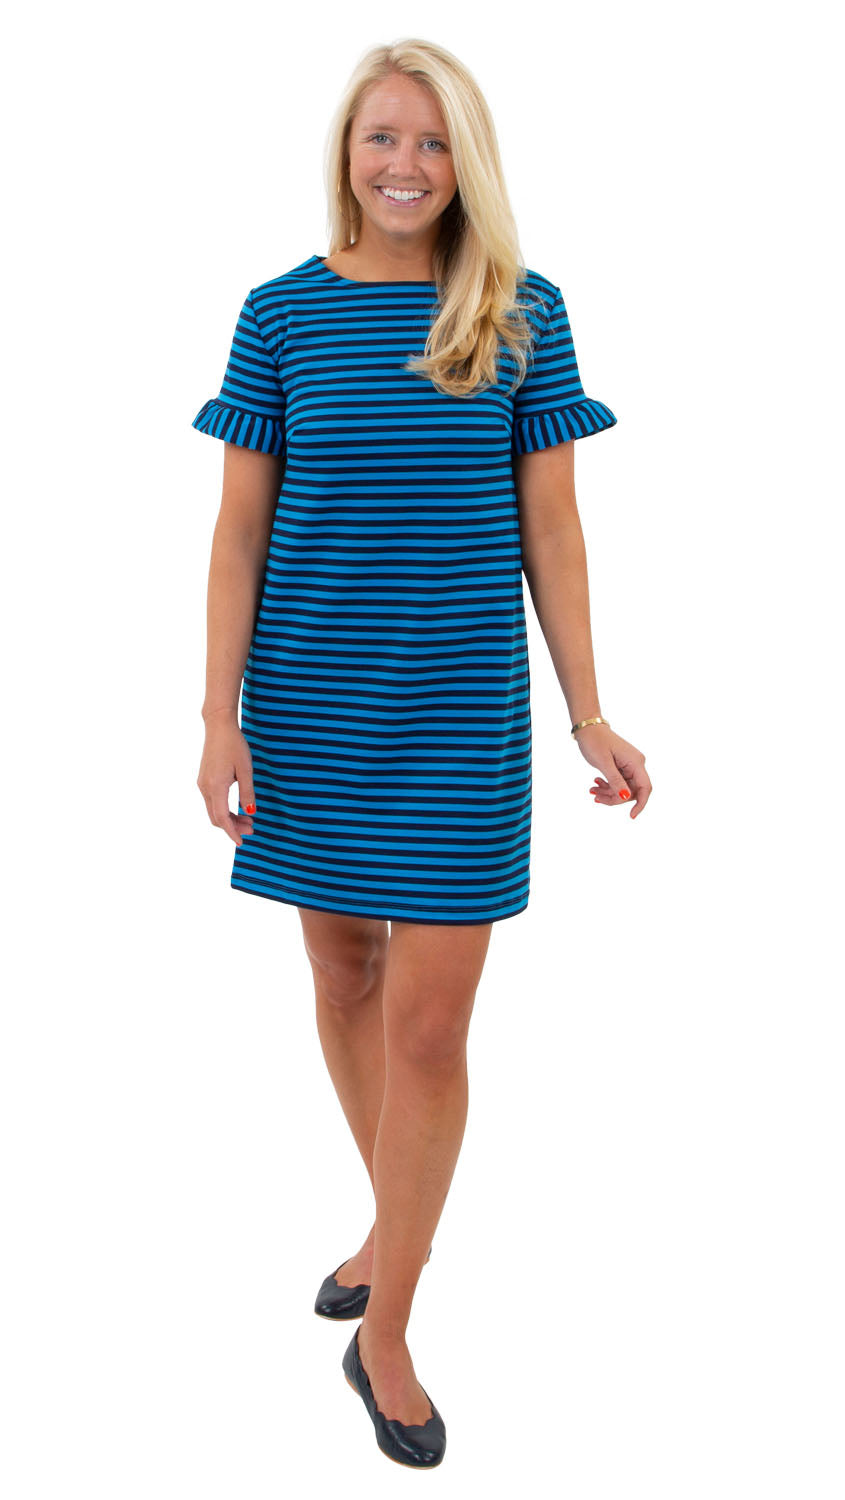 Coco Dress - Double Knit Ponte Stripes - Navy/Azure Blue